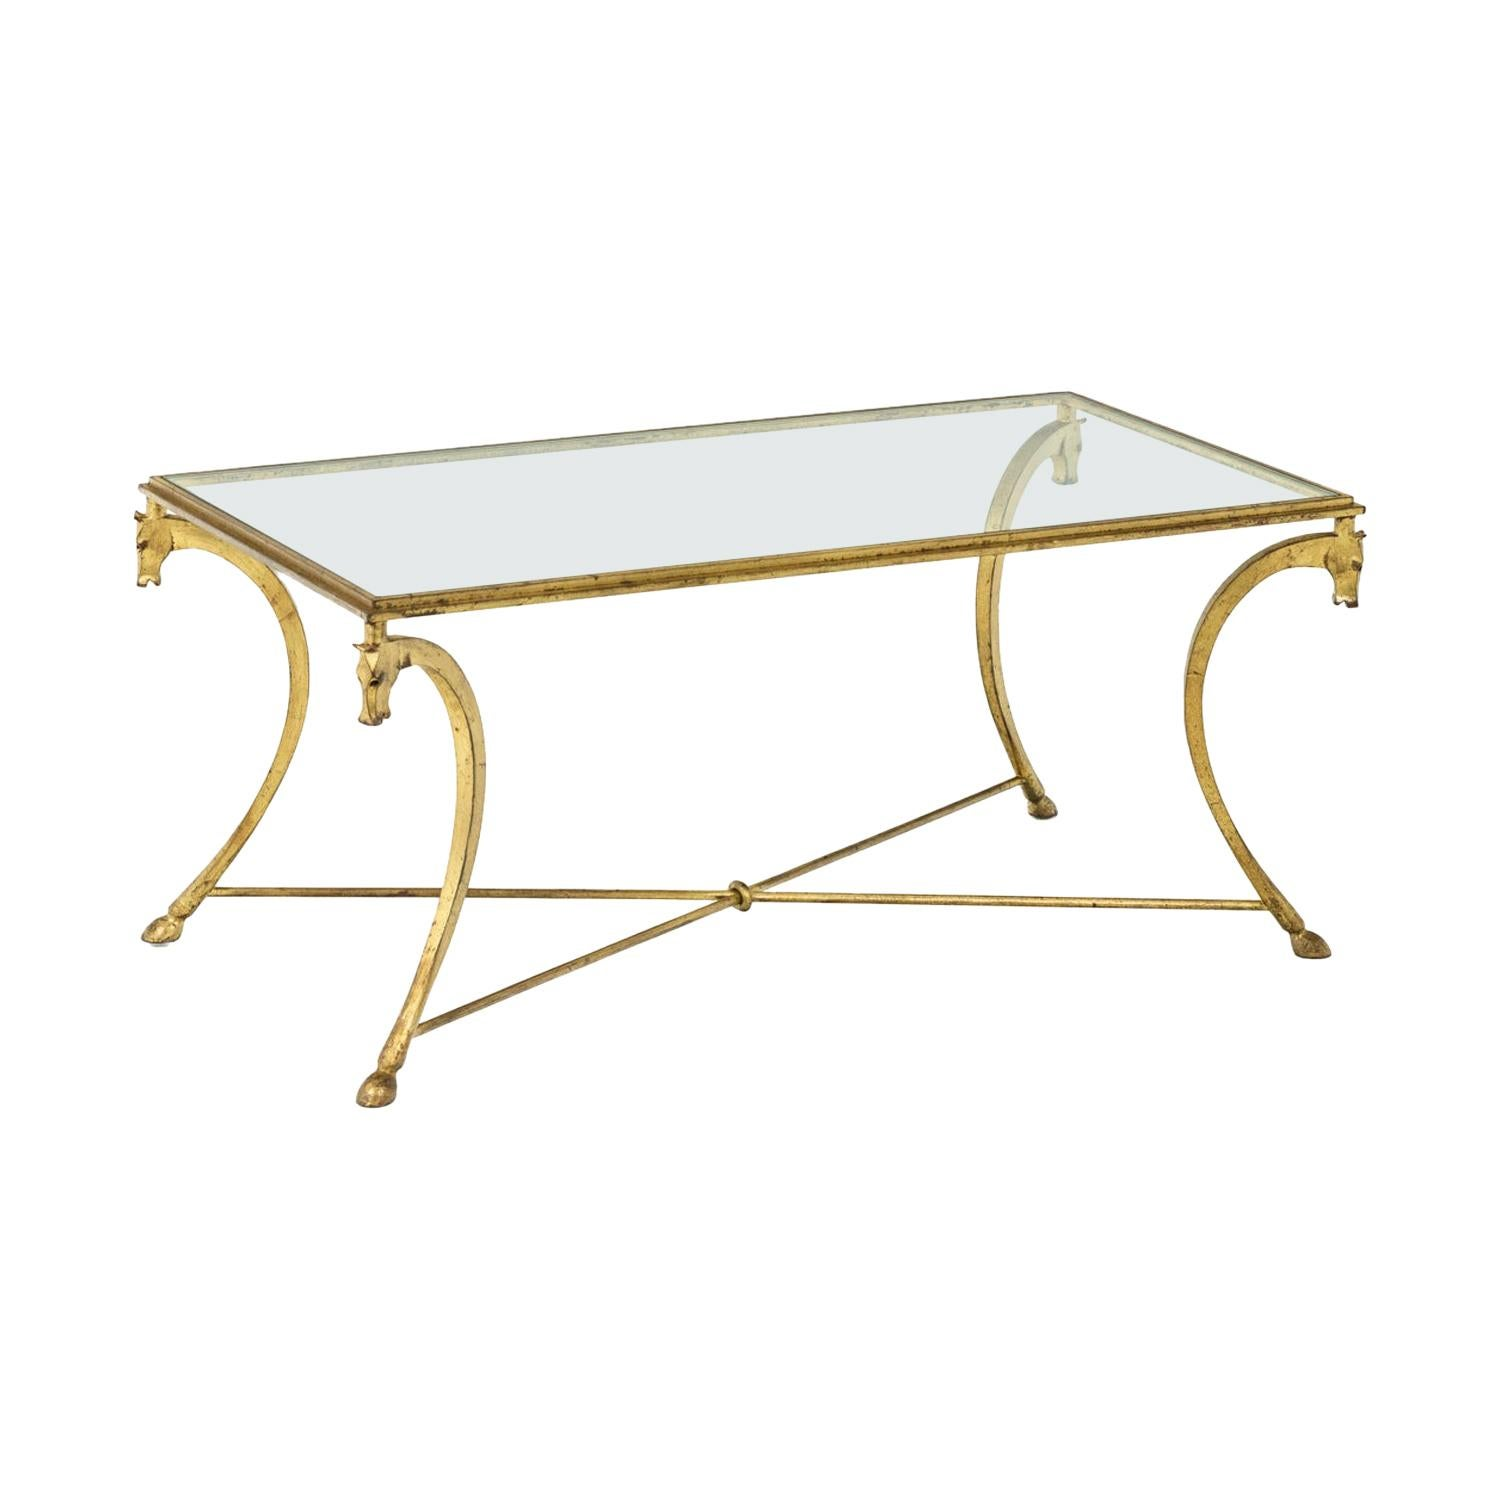 Maison Ramsay, Coffee Table in Gilt Iron, 1950's